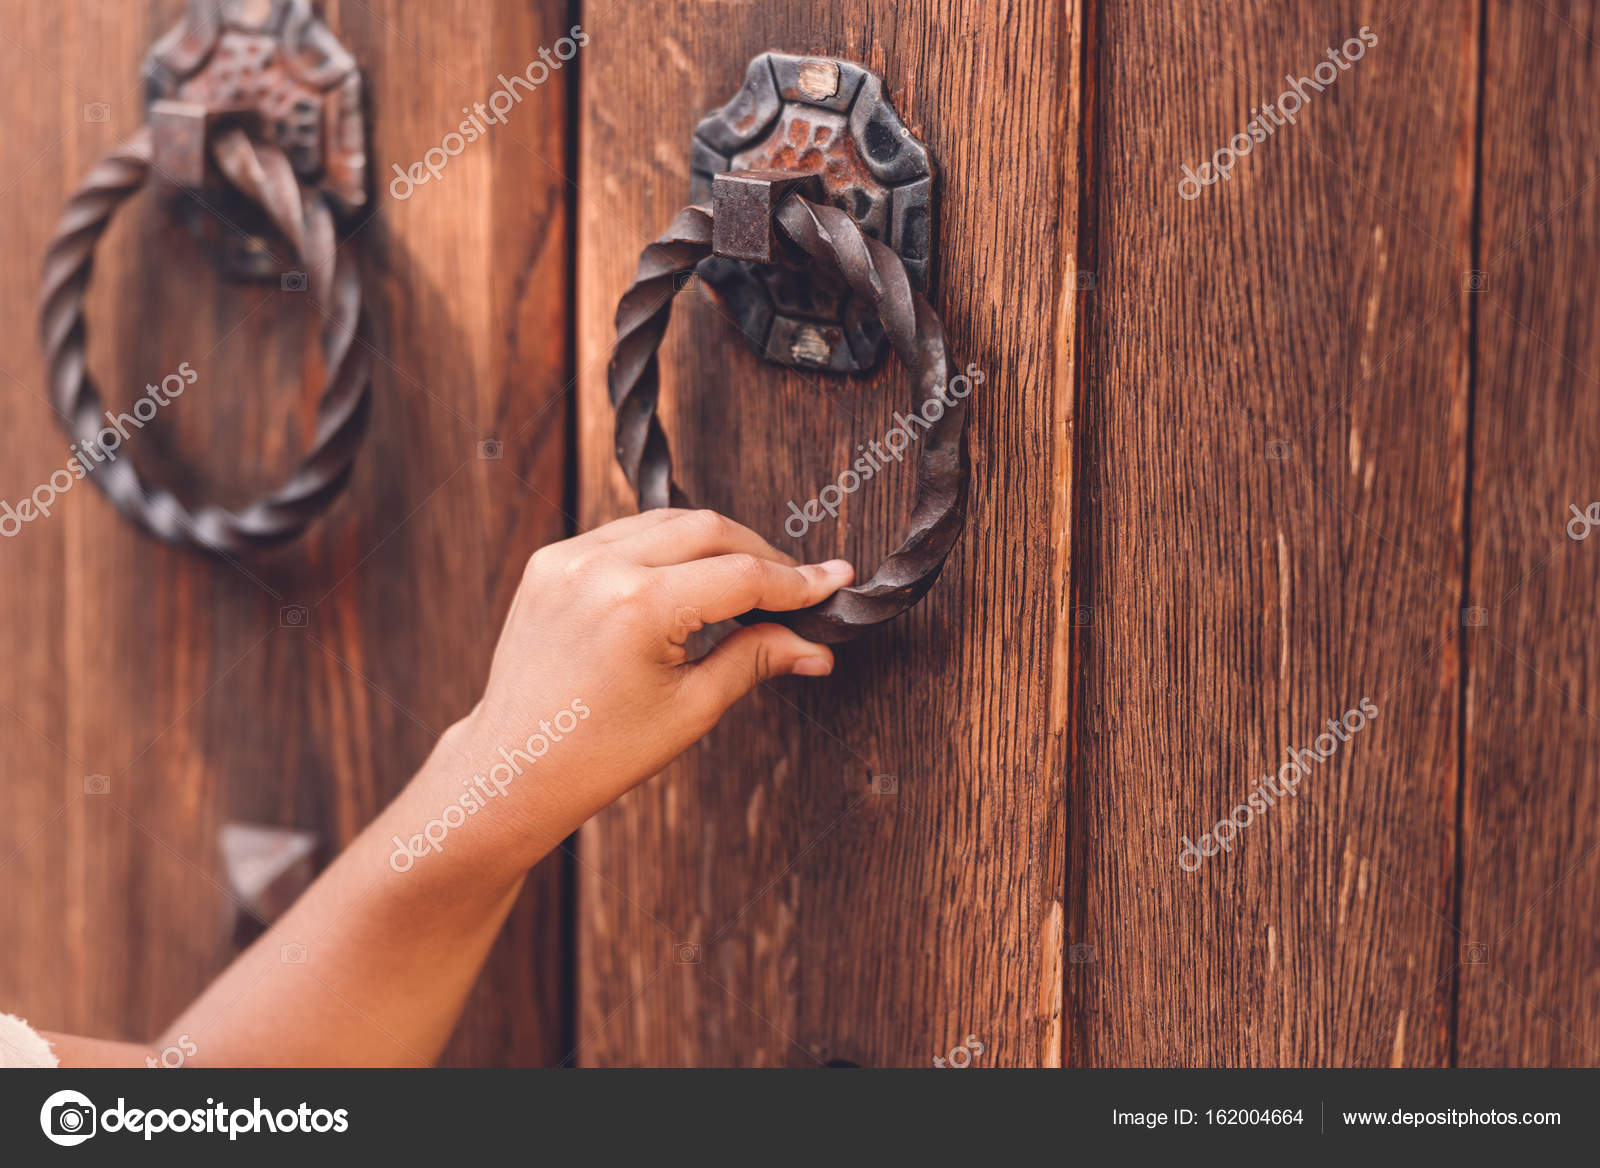 Cropped view of child knocking in door with metal handle \u2014 Photo by alebloshka & hand knocking in door \u2014 Stock Photo © alebloshka #162004664